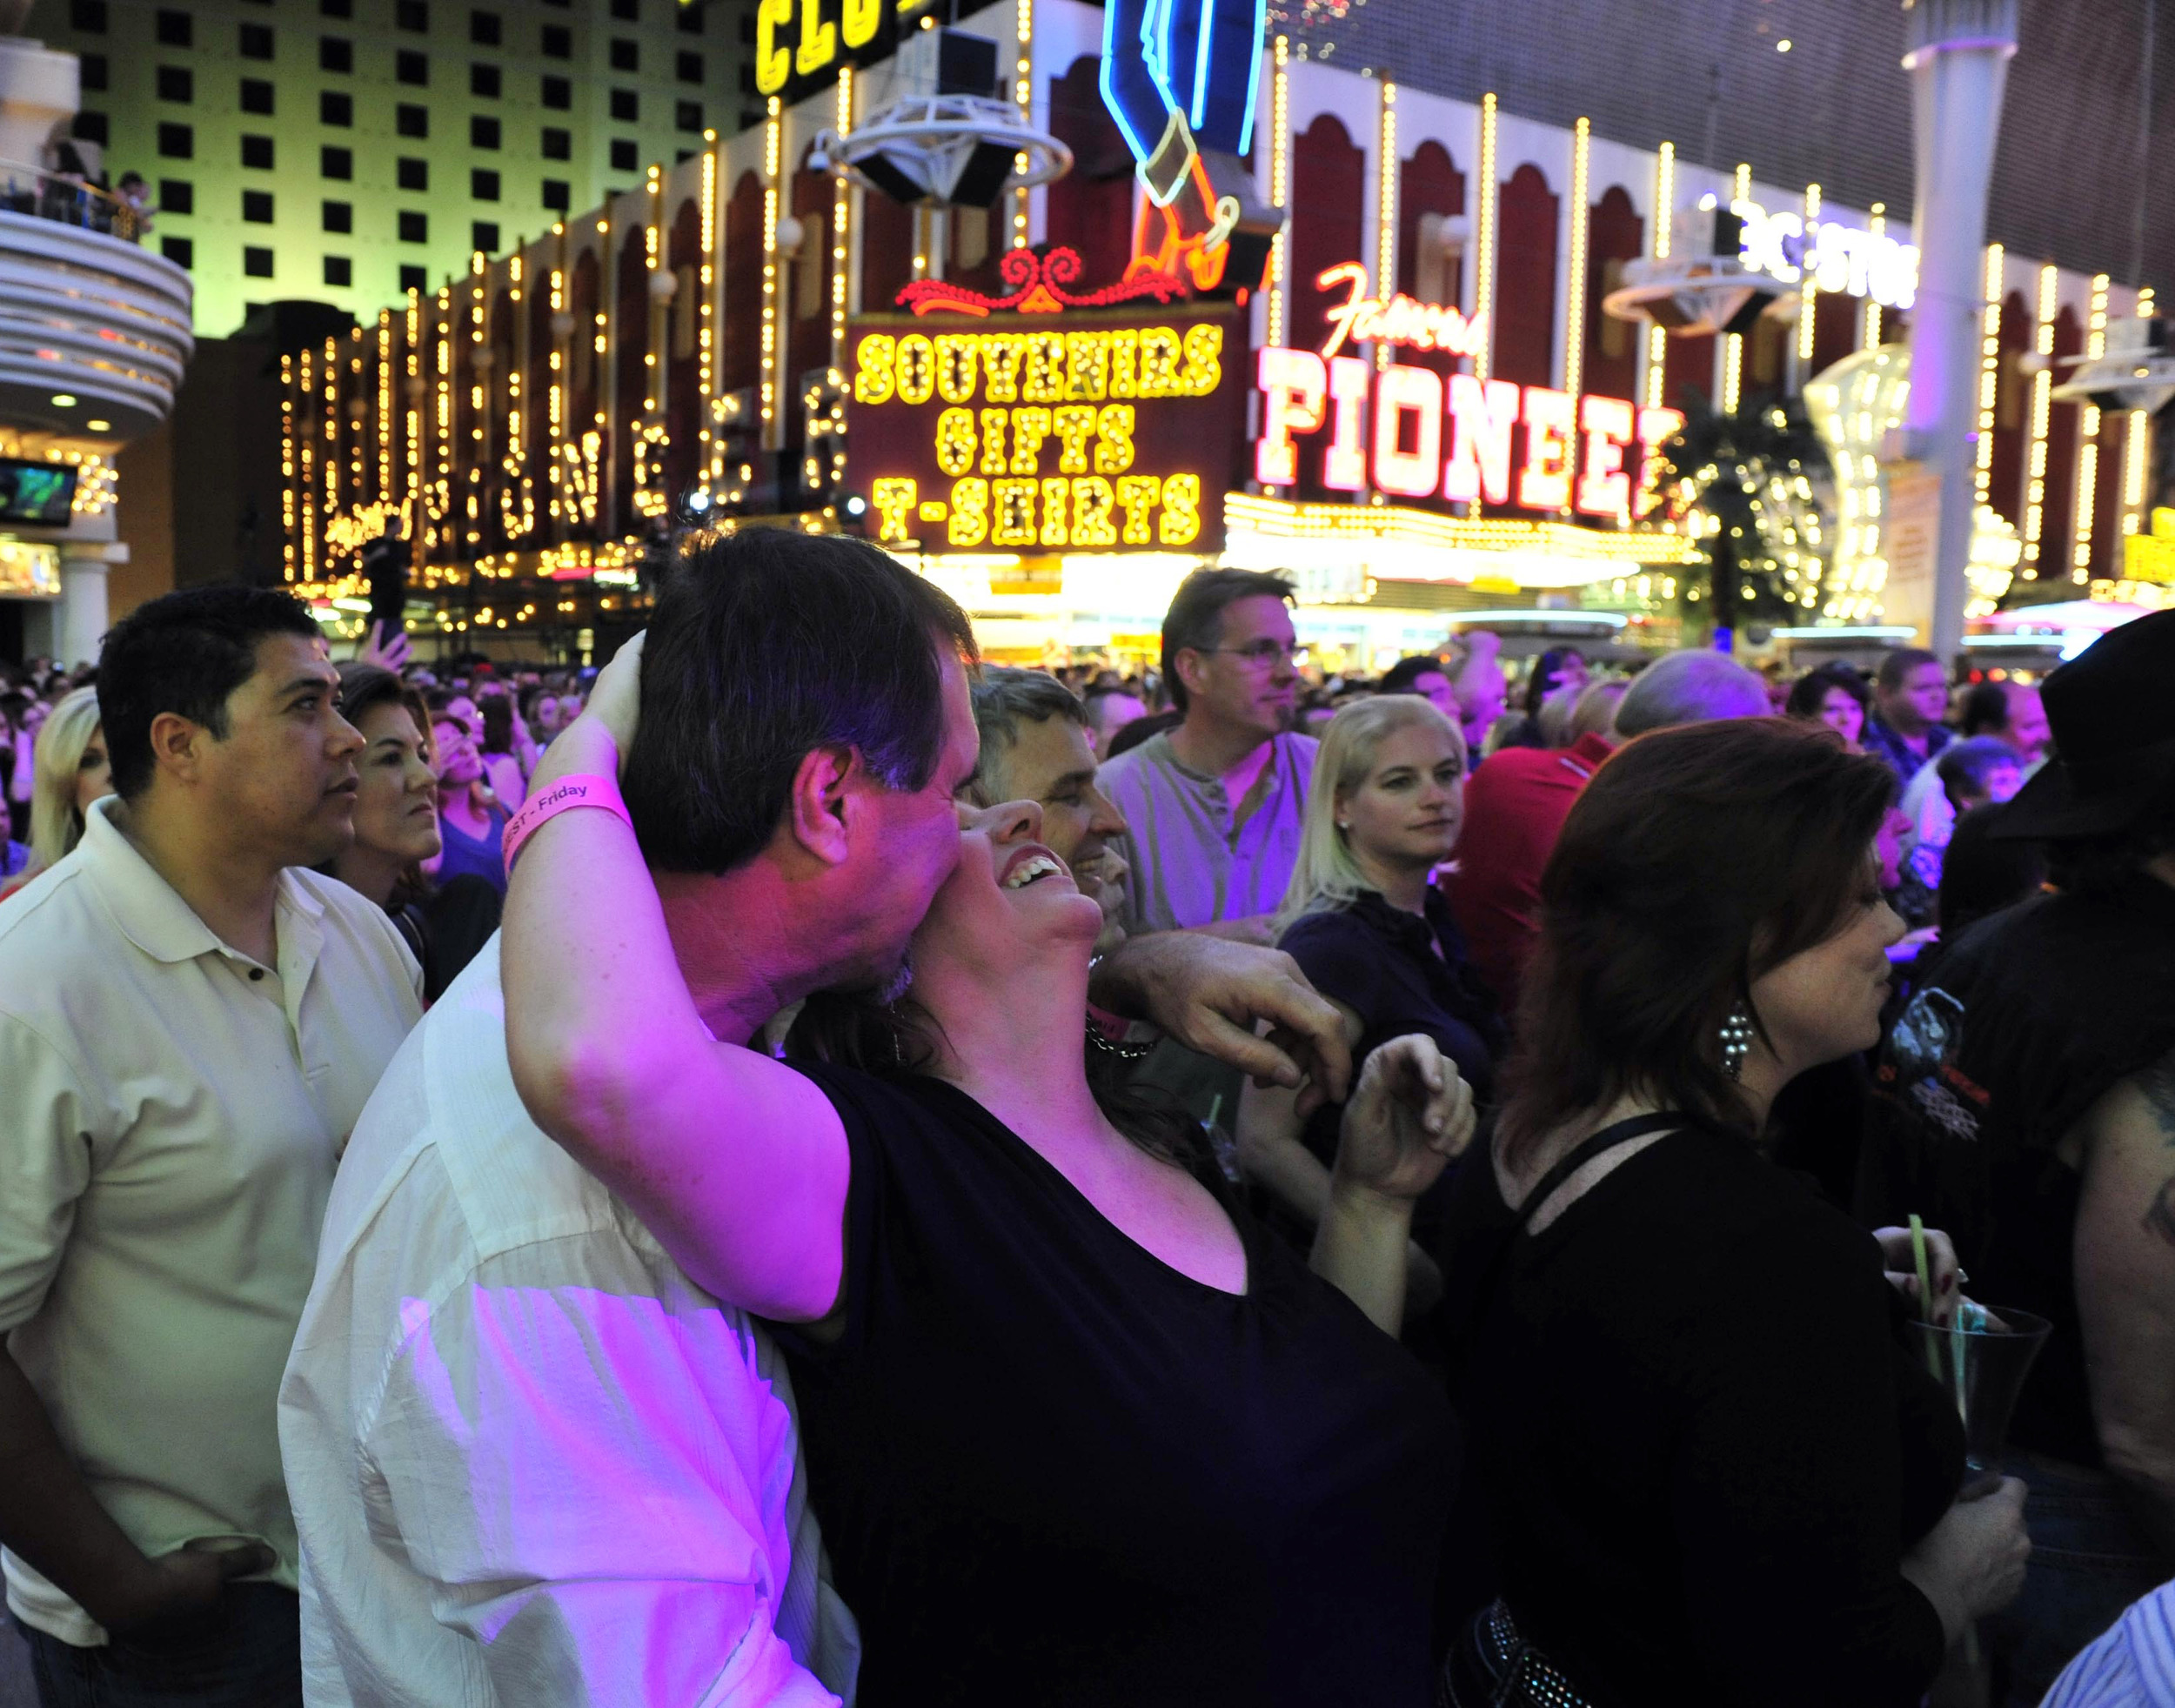 A couple dances and kisses while watching Scotty McCreery perform during ACM week March 30, 2012 in Las Vegas, Nev.